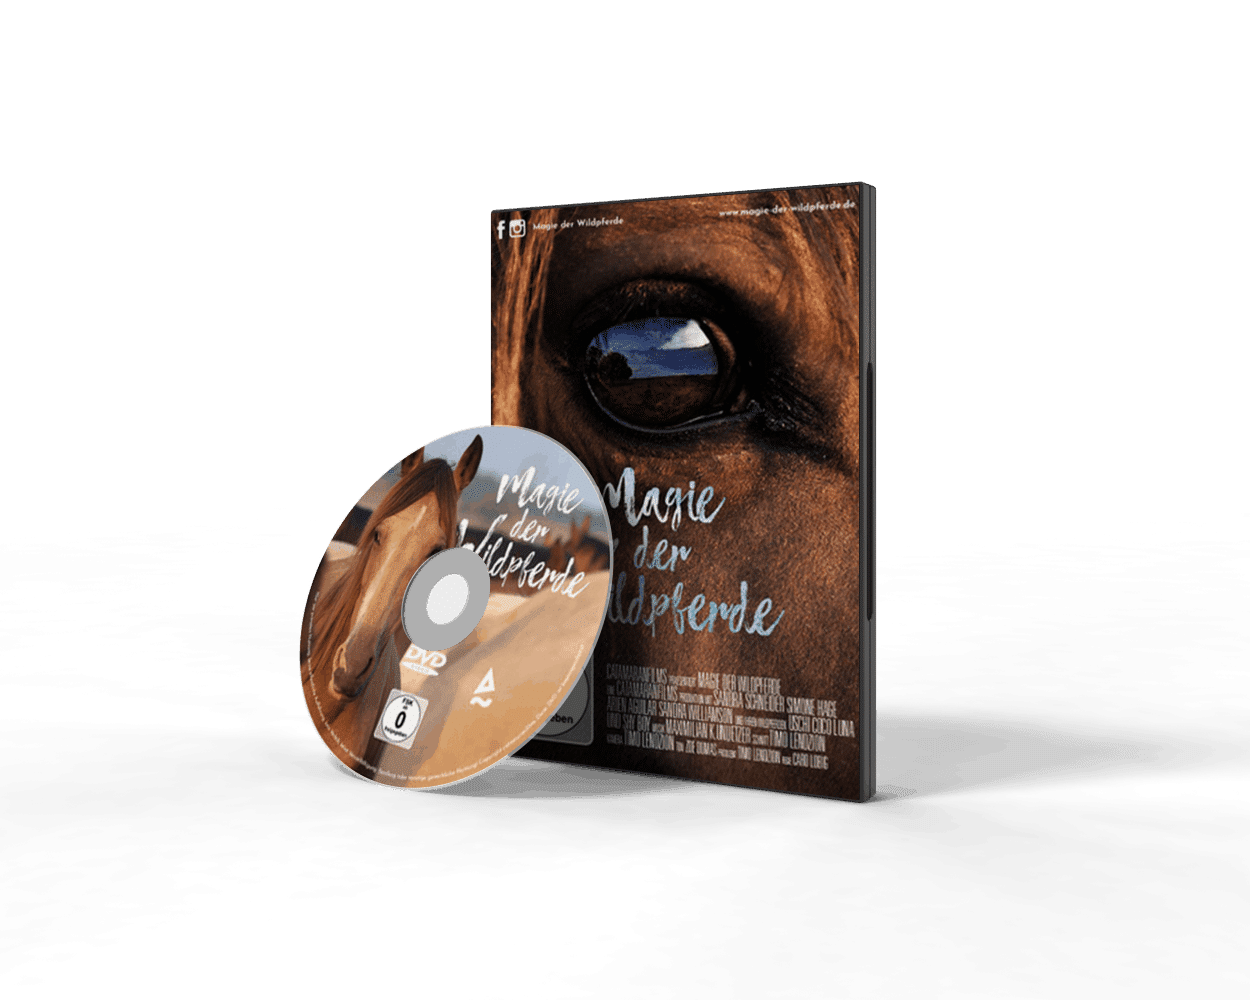 dvd_case_mockup_1_large_transparent_komprimiert